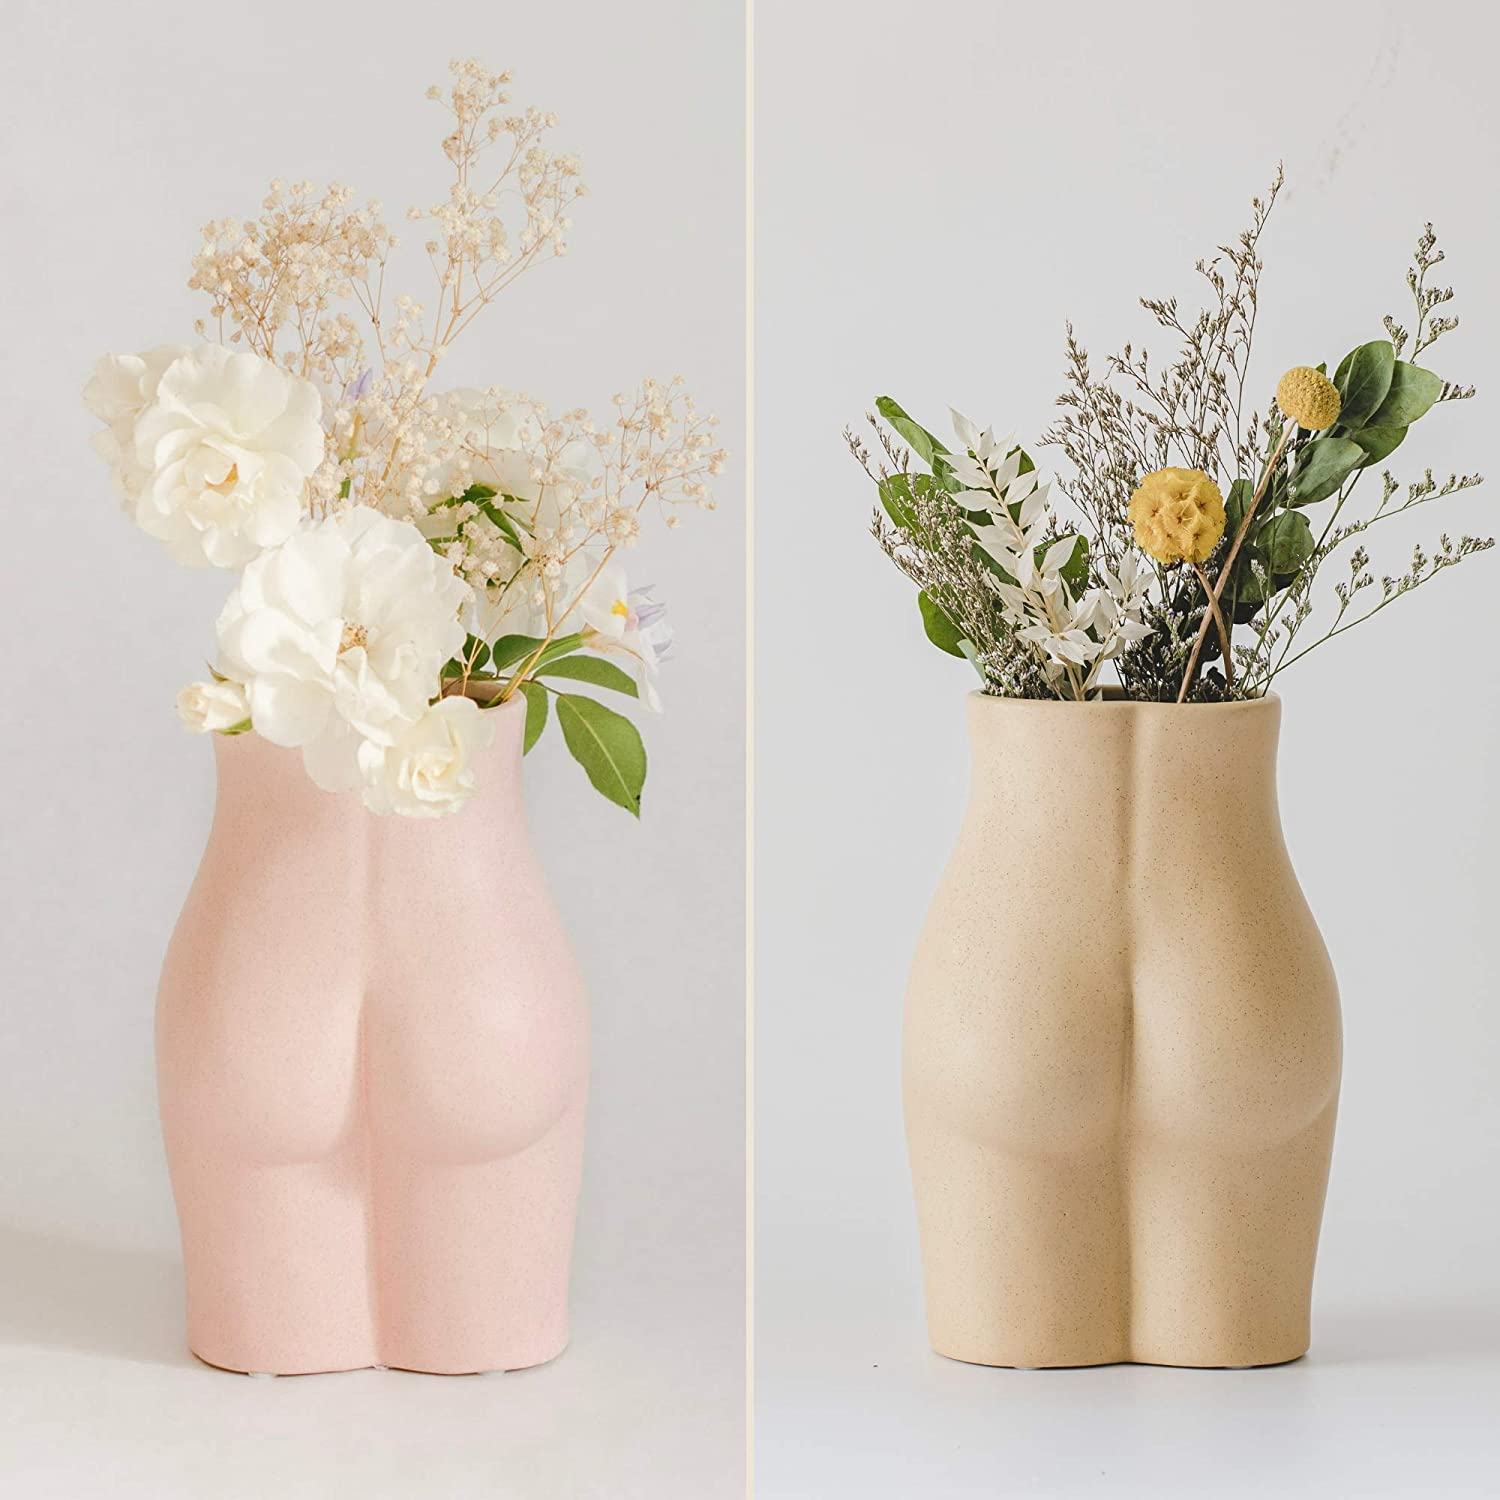 Base Roots Female Form Body Flower Vase, Tall Ceramic Vases for Modern Boho Home Decor, Lady Butt Vase, Indoor Planter Plant Pot, Feminist Decors Cute Chic Accent Pieces